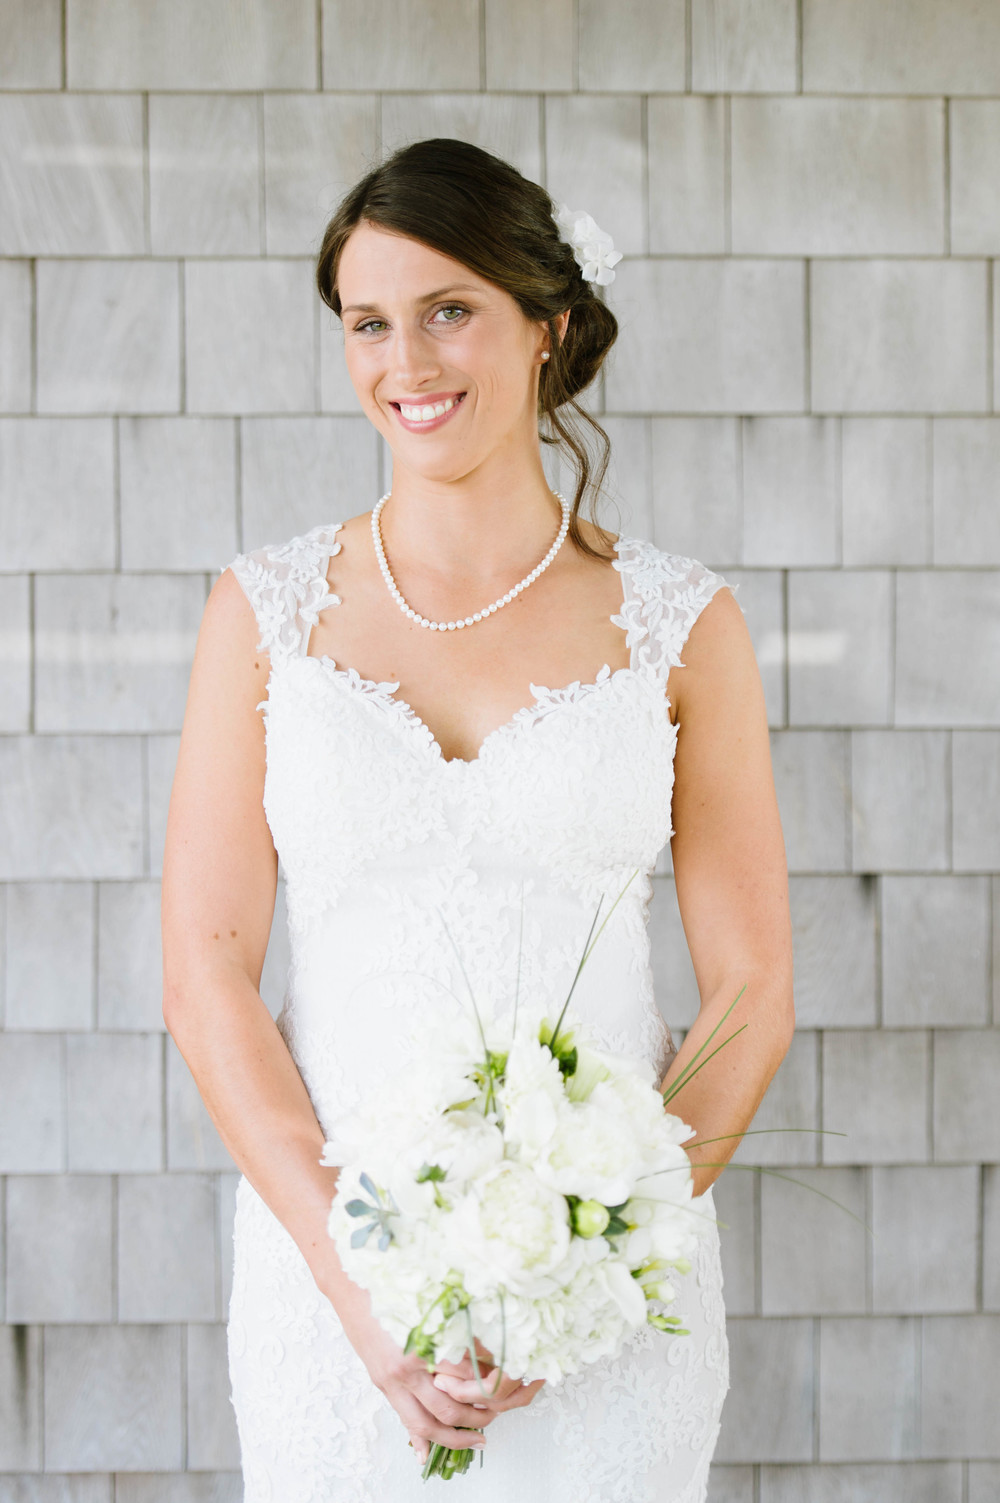 Pelham_House_Wedding_Cape_Cod020.jpg